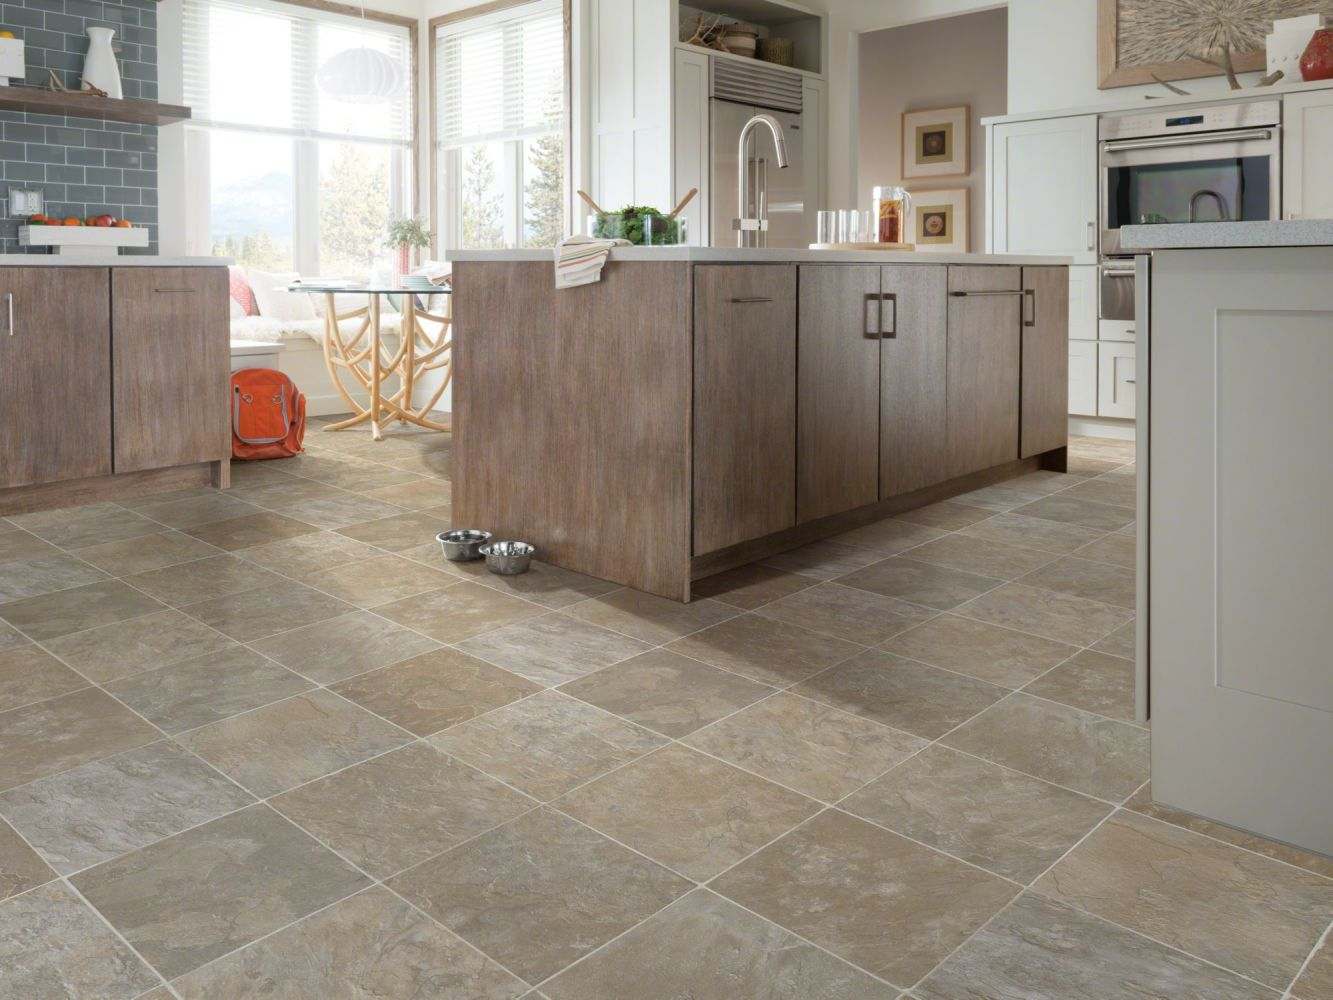 Shaw Floors Resilient Property Solutions Pro 12 Classics Smoke 00537_VG054